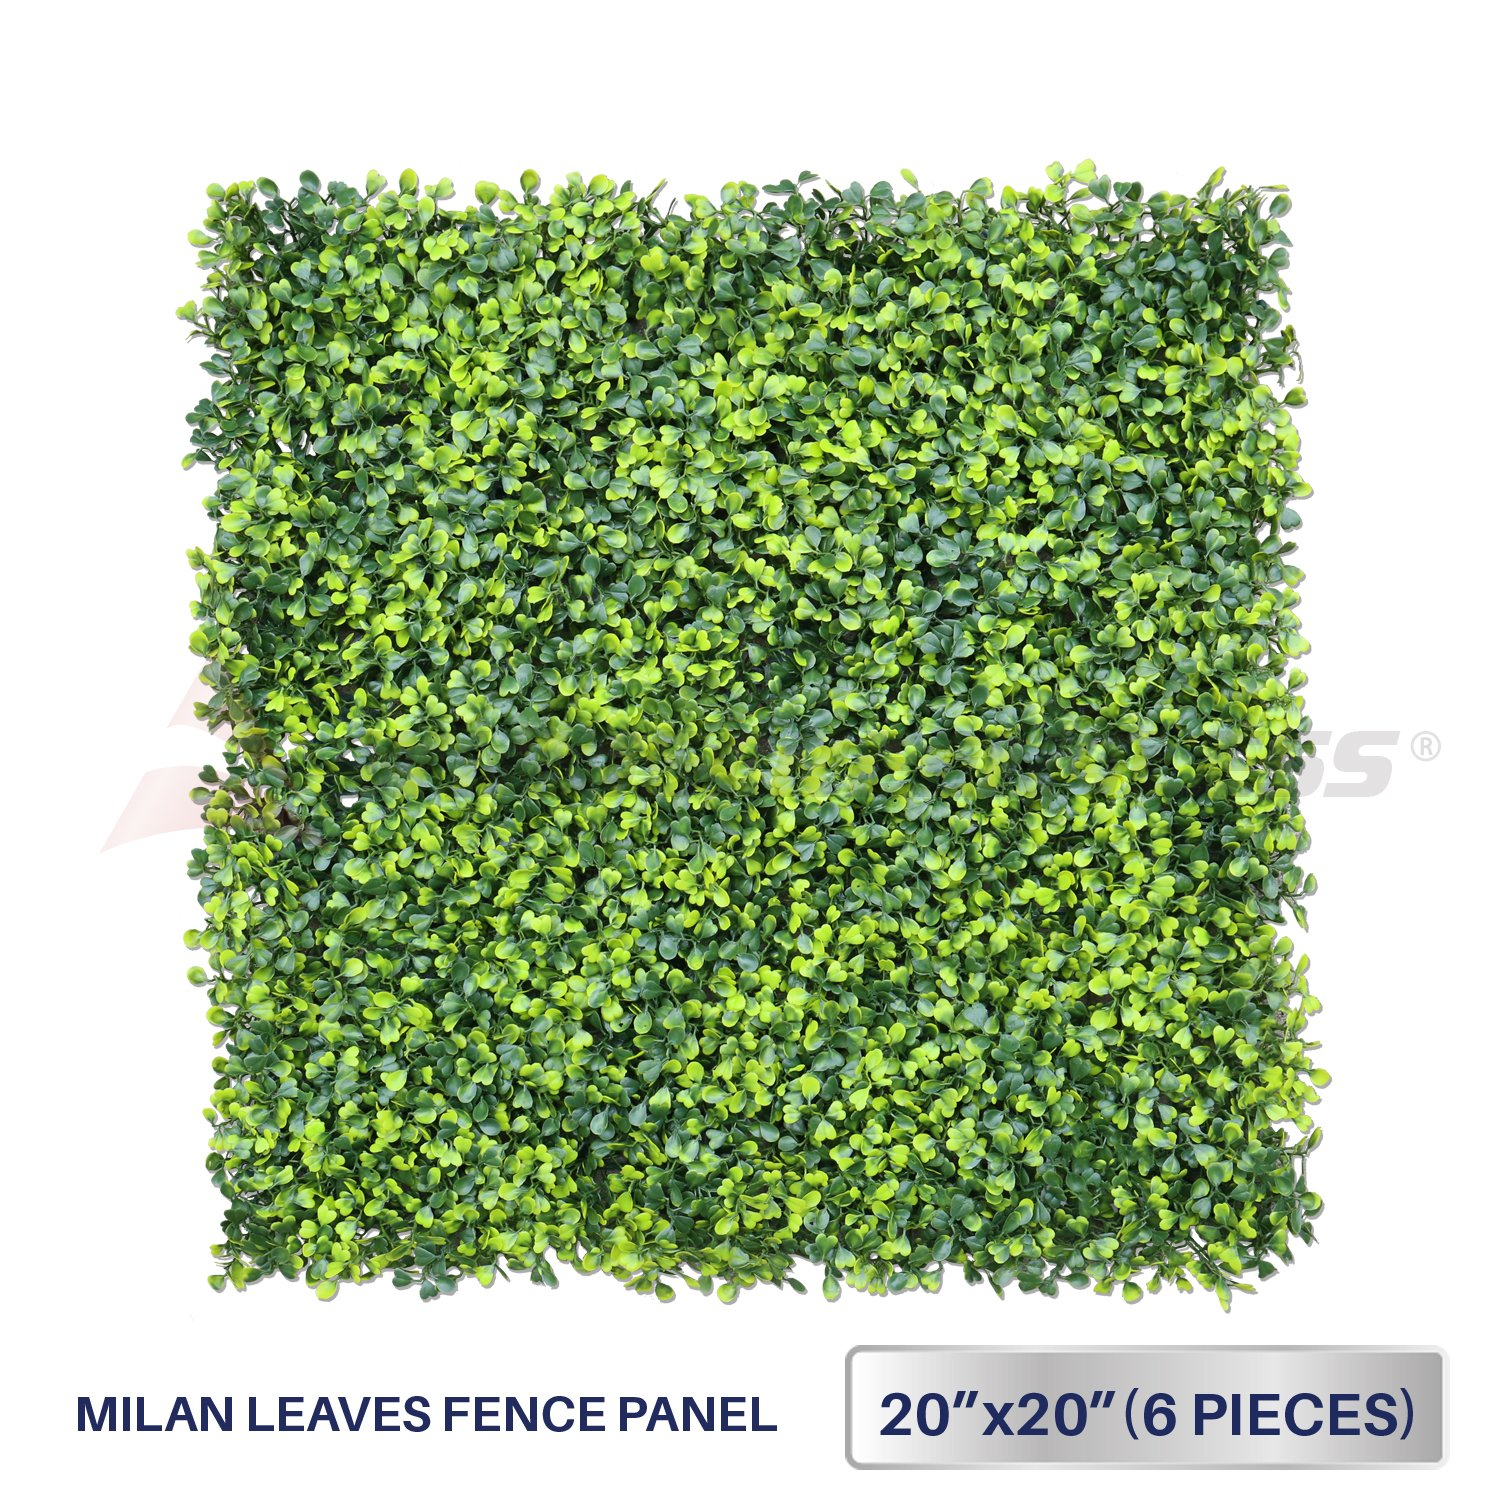 Windscreen4less Artificial Faux Ivy Leaf Decorative Fence Screen 20'' x 20'' Boxwood/Milan Leaves Fence Patio Panel 6 Pcs